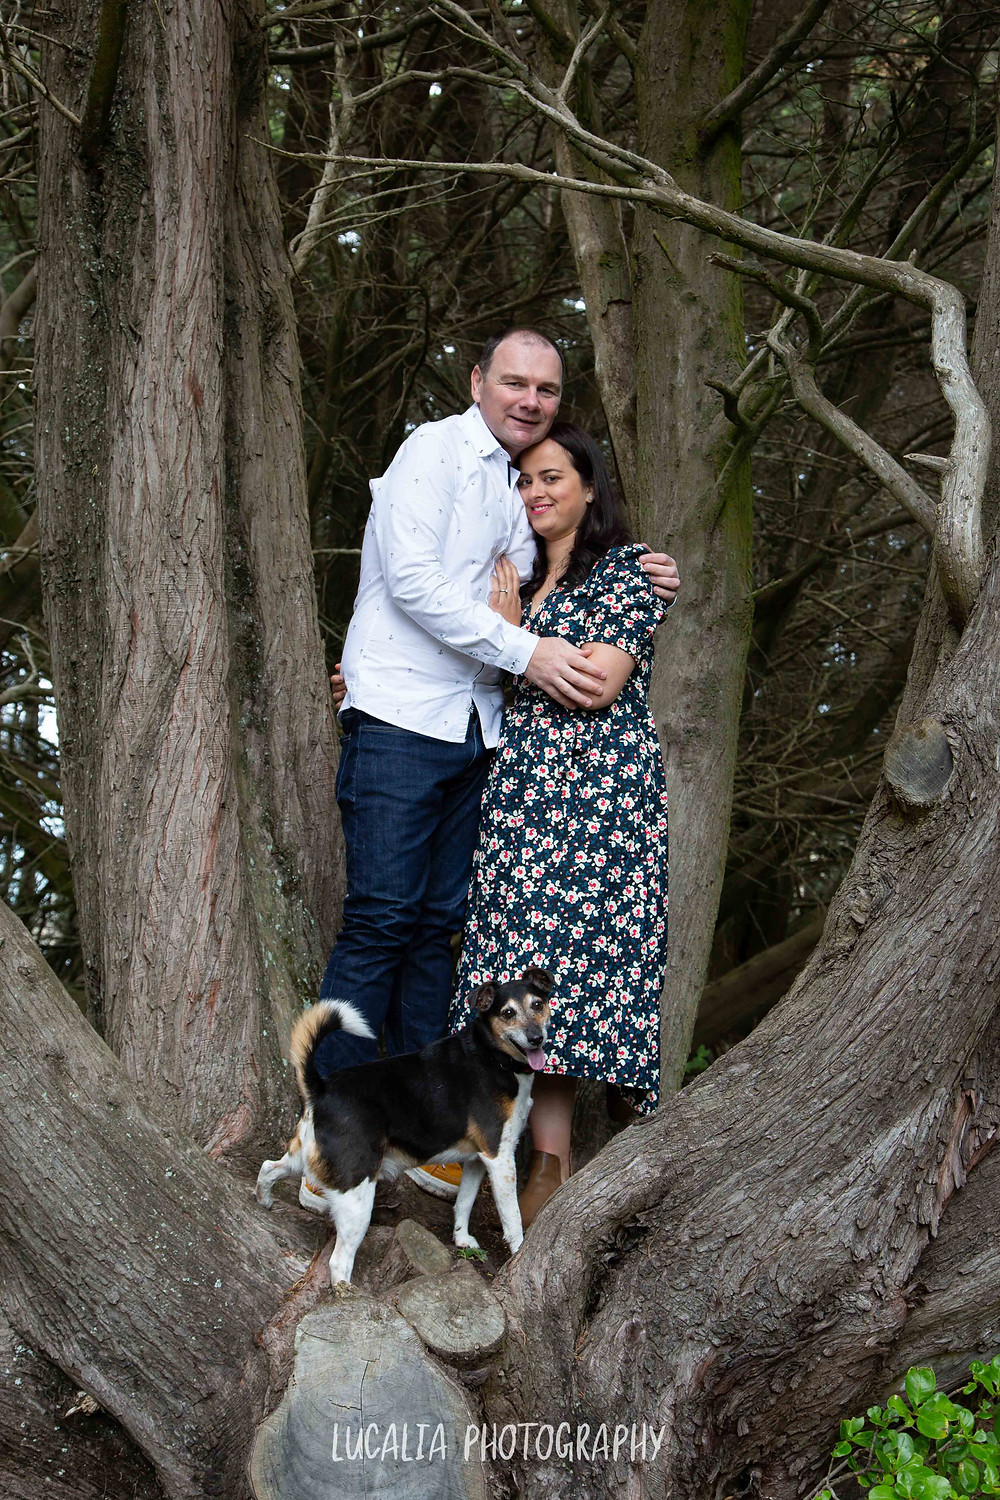 engaged couple hugging in a tree with their dog at Castlepoint, Lucalia Photography Wairarapa wedding photographer